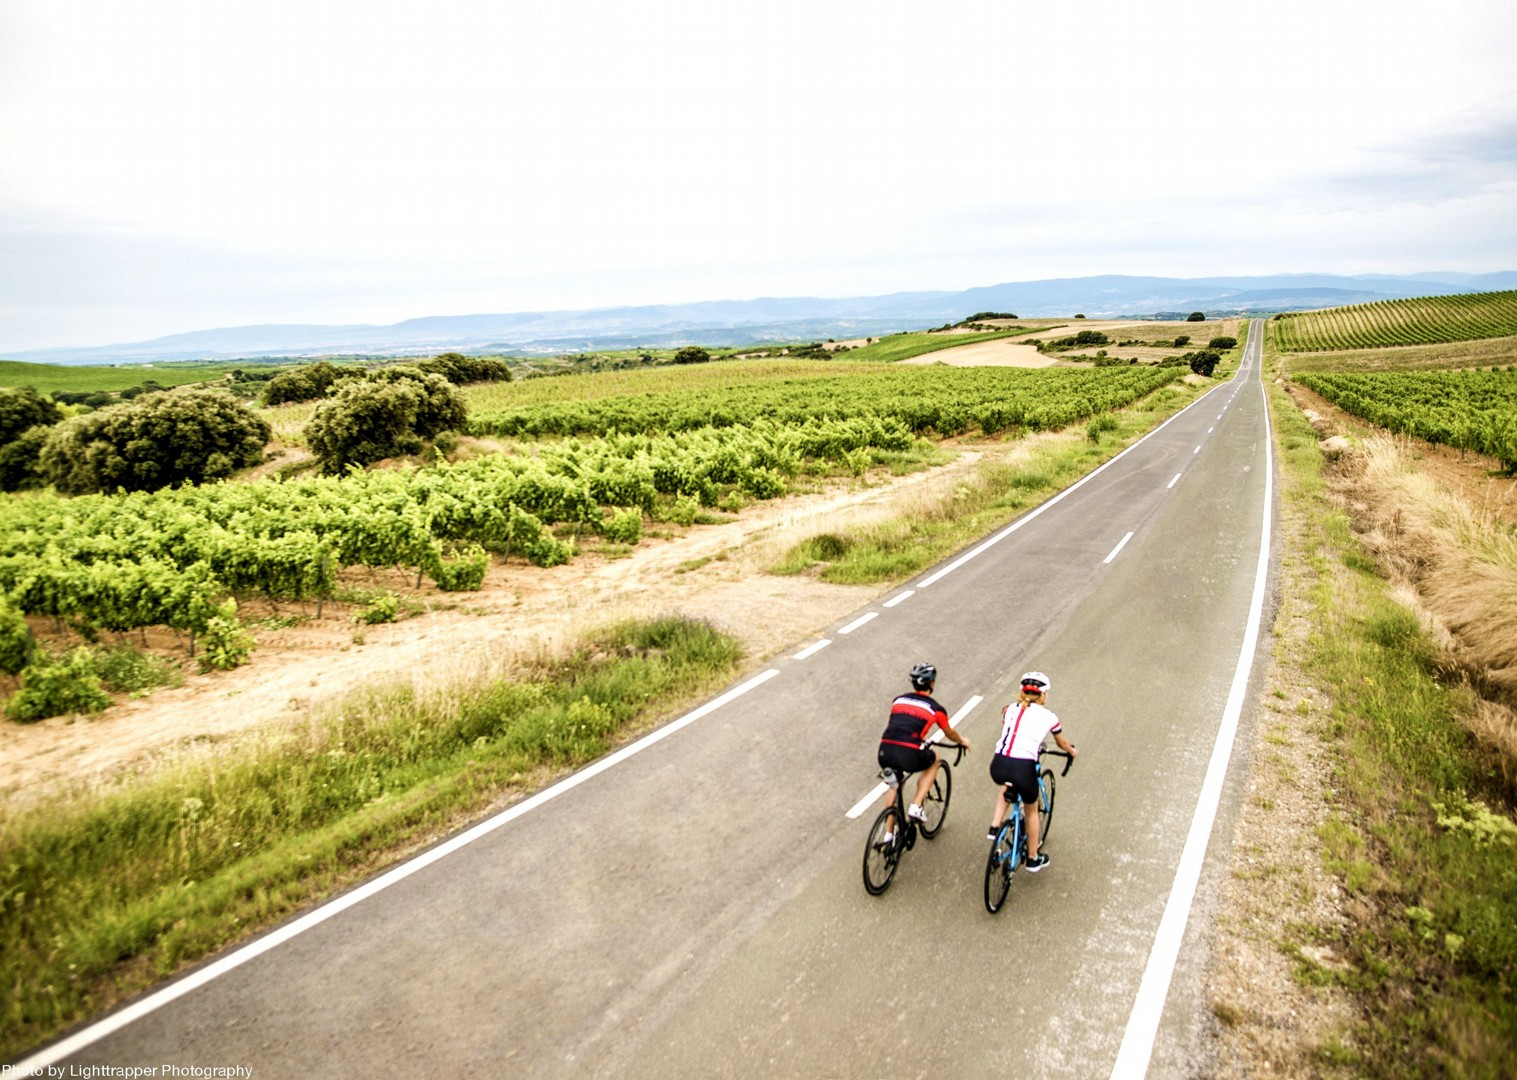 day6_northern_spain_166.jpg - Northern Spain - La Rioja - Ruta del Vino - Guided Road Cycling Holiday - Road Cycling